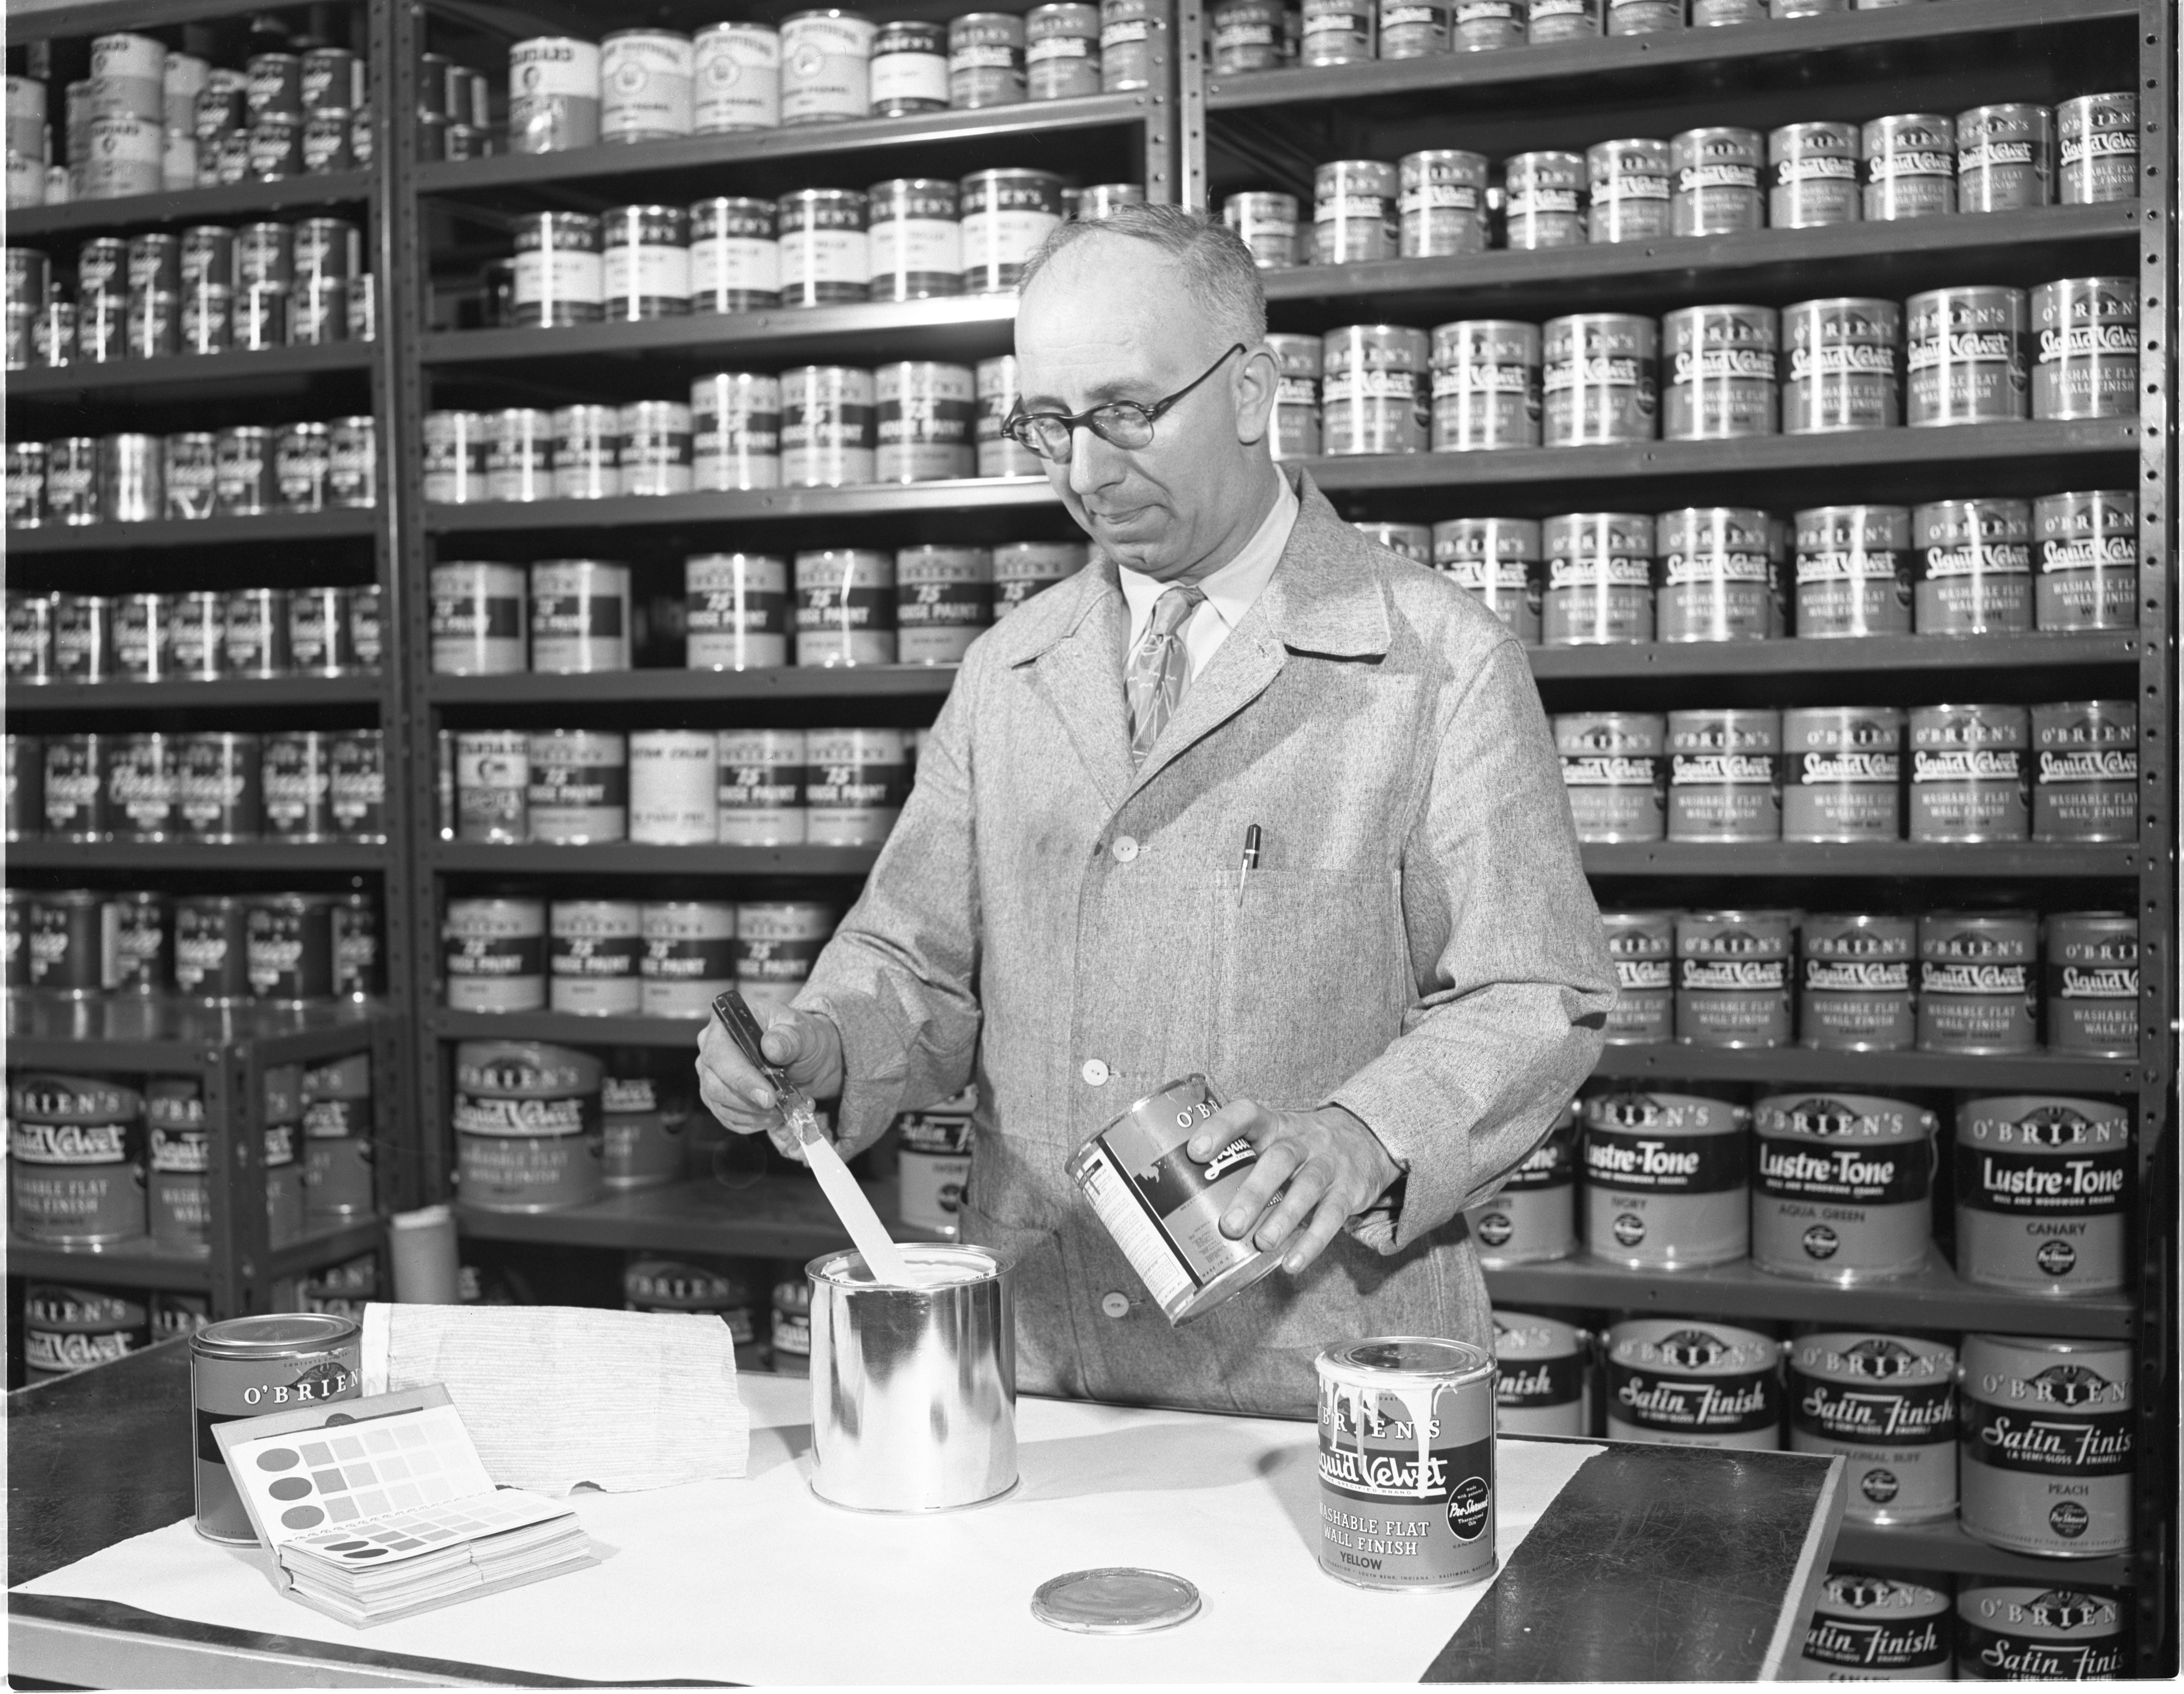 An Employee Of The Paint Pot Mixes Paint, April 1952 image